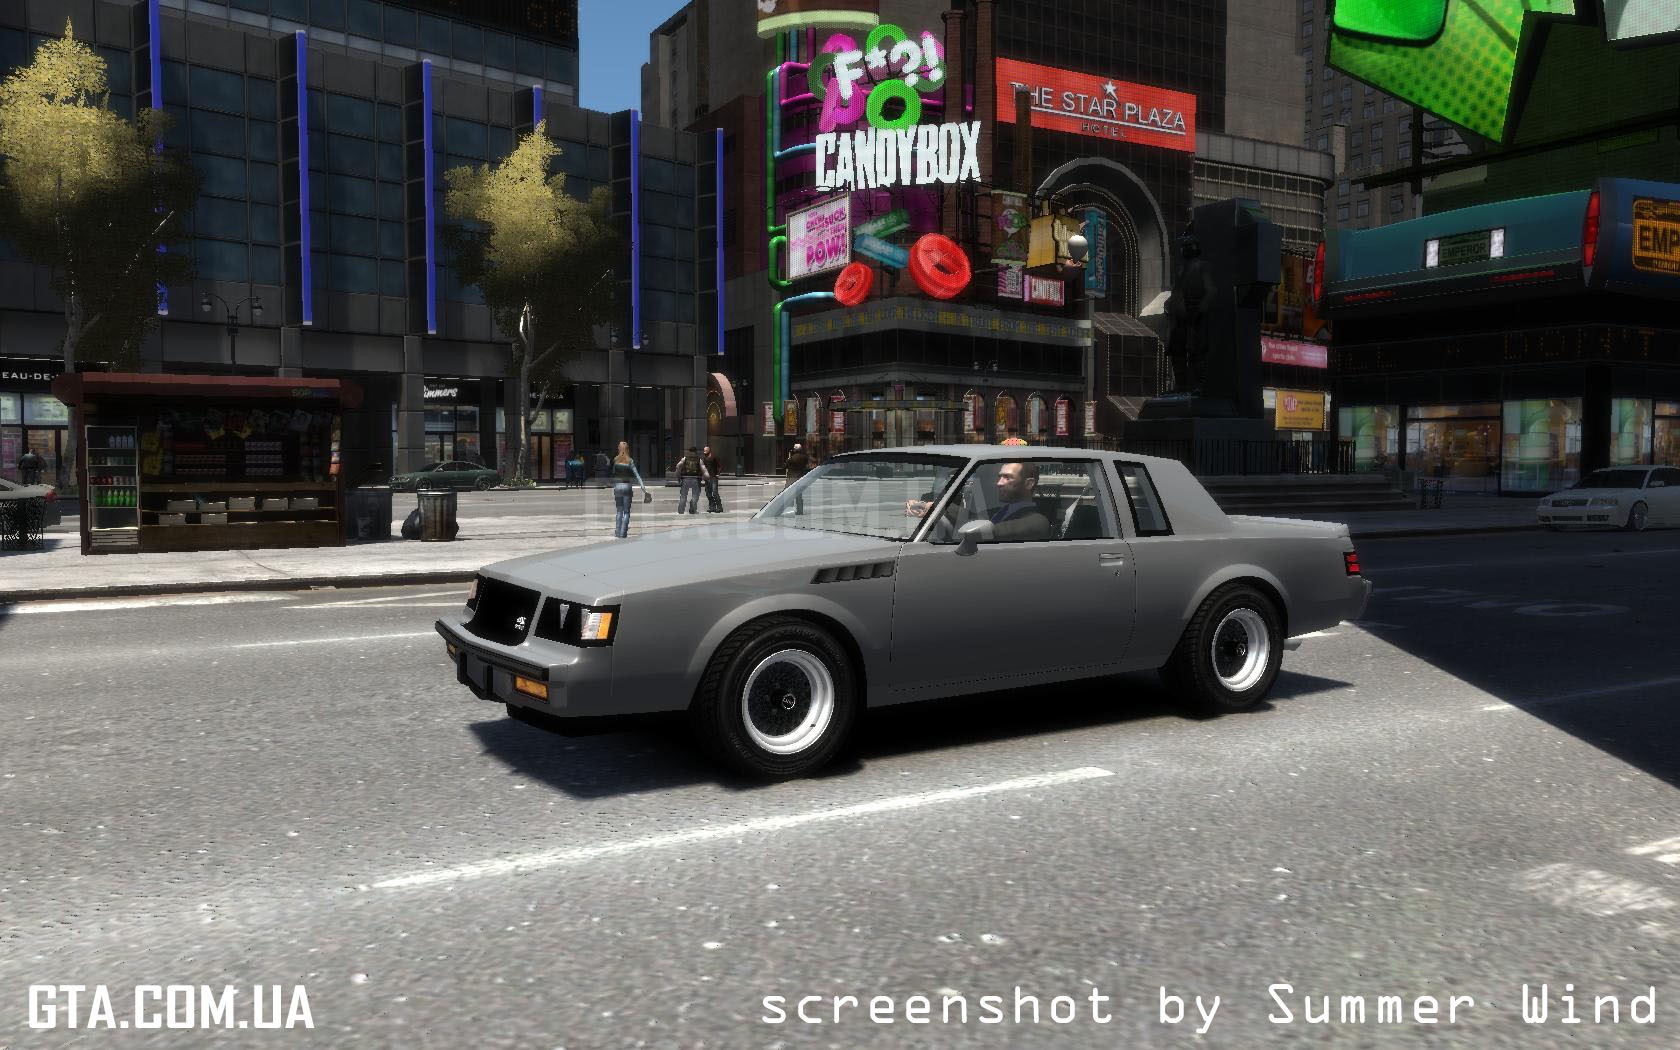 Buick Regal GNX 1987 v2.0 / Моды для GTA 4 / GTA.com.ua ...